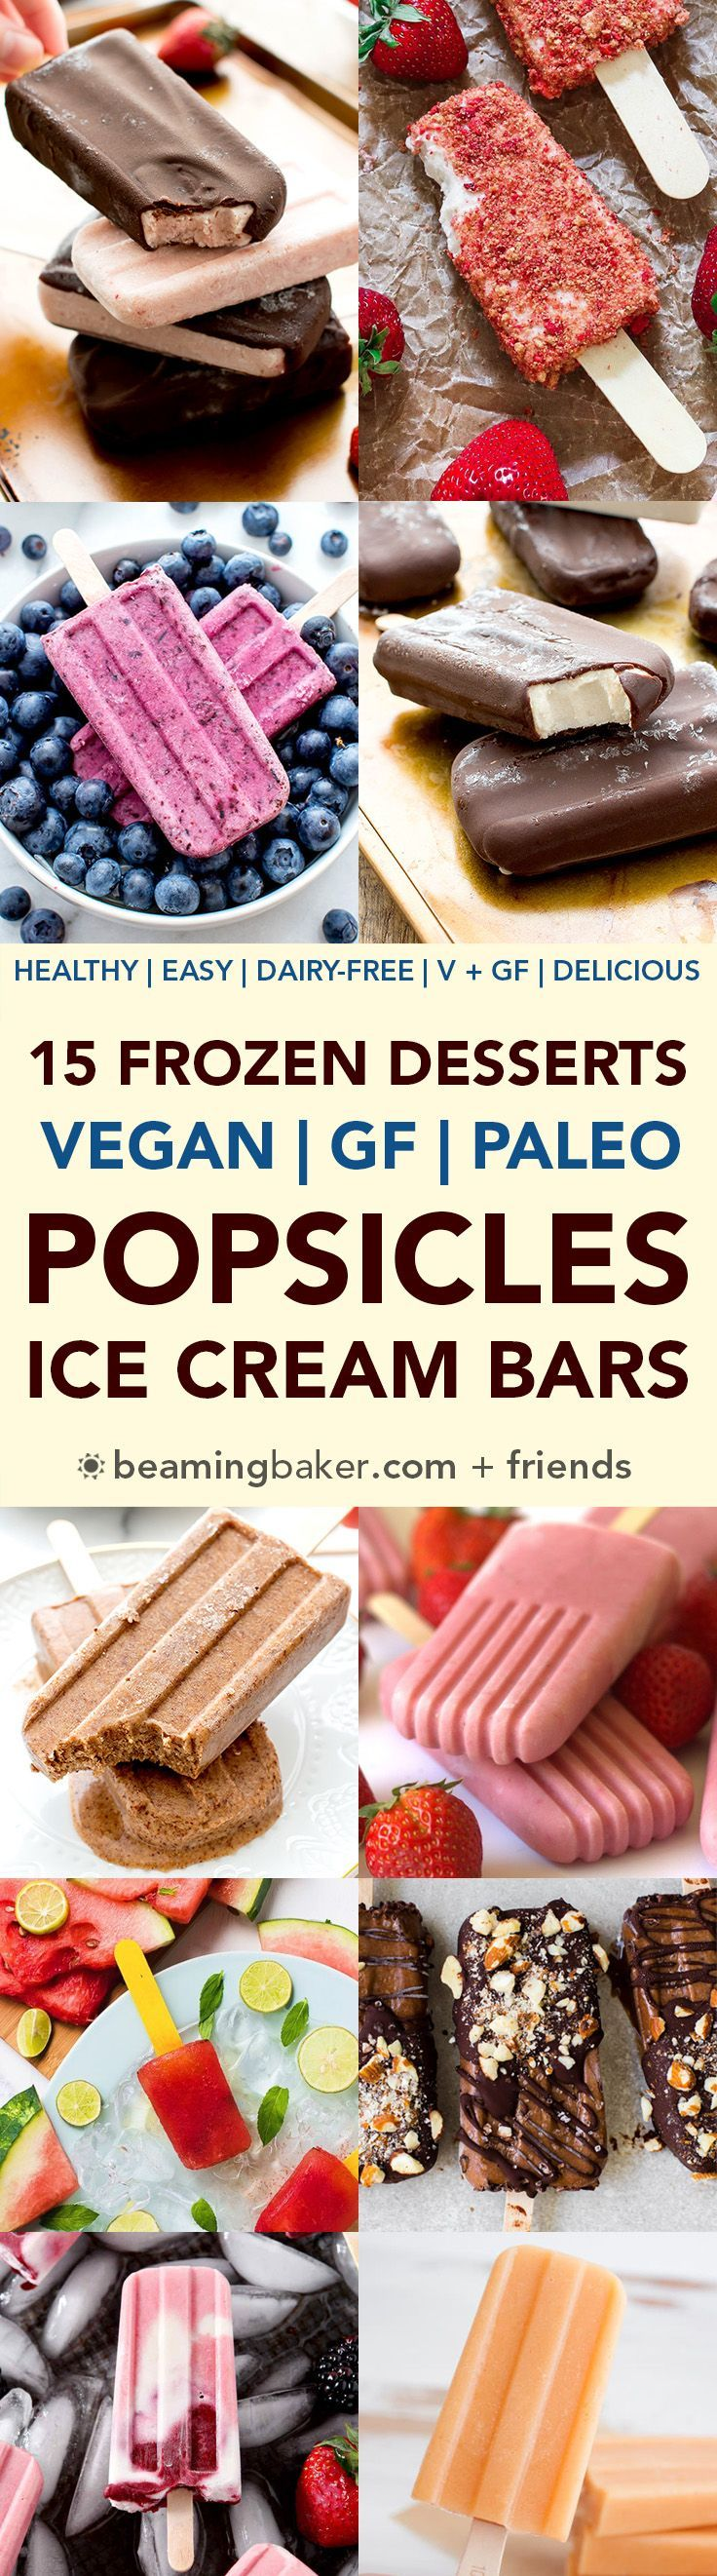 15 Healthy Frozen Desserts Made in a Popsicle Mold (V, DF, Paleo): a frozen dessert collection of dairy-free, paleo and vegan treats made with a popsicle mold! #Vegan #Paleo #DairyFree #GlutenFree   BeamingBaker.com